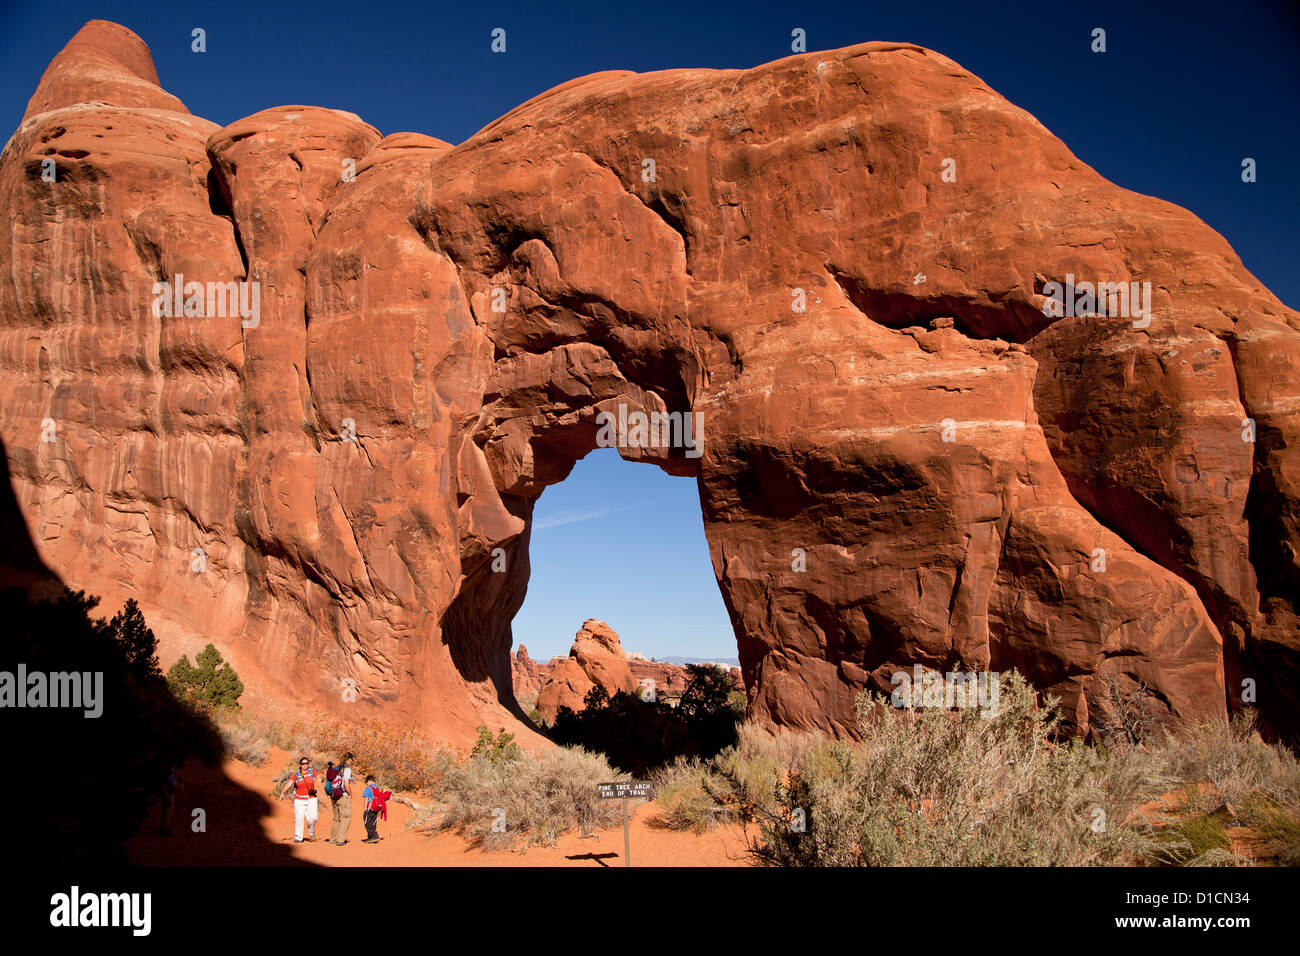 Pine Tree Arch at Devil's Garden, Arches National Park just outside of Moab, Utah, United States of America, - Stock Image